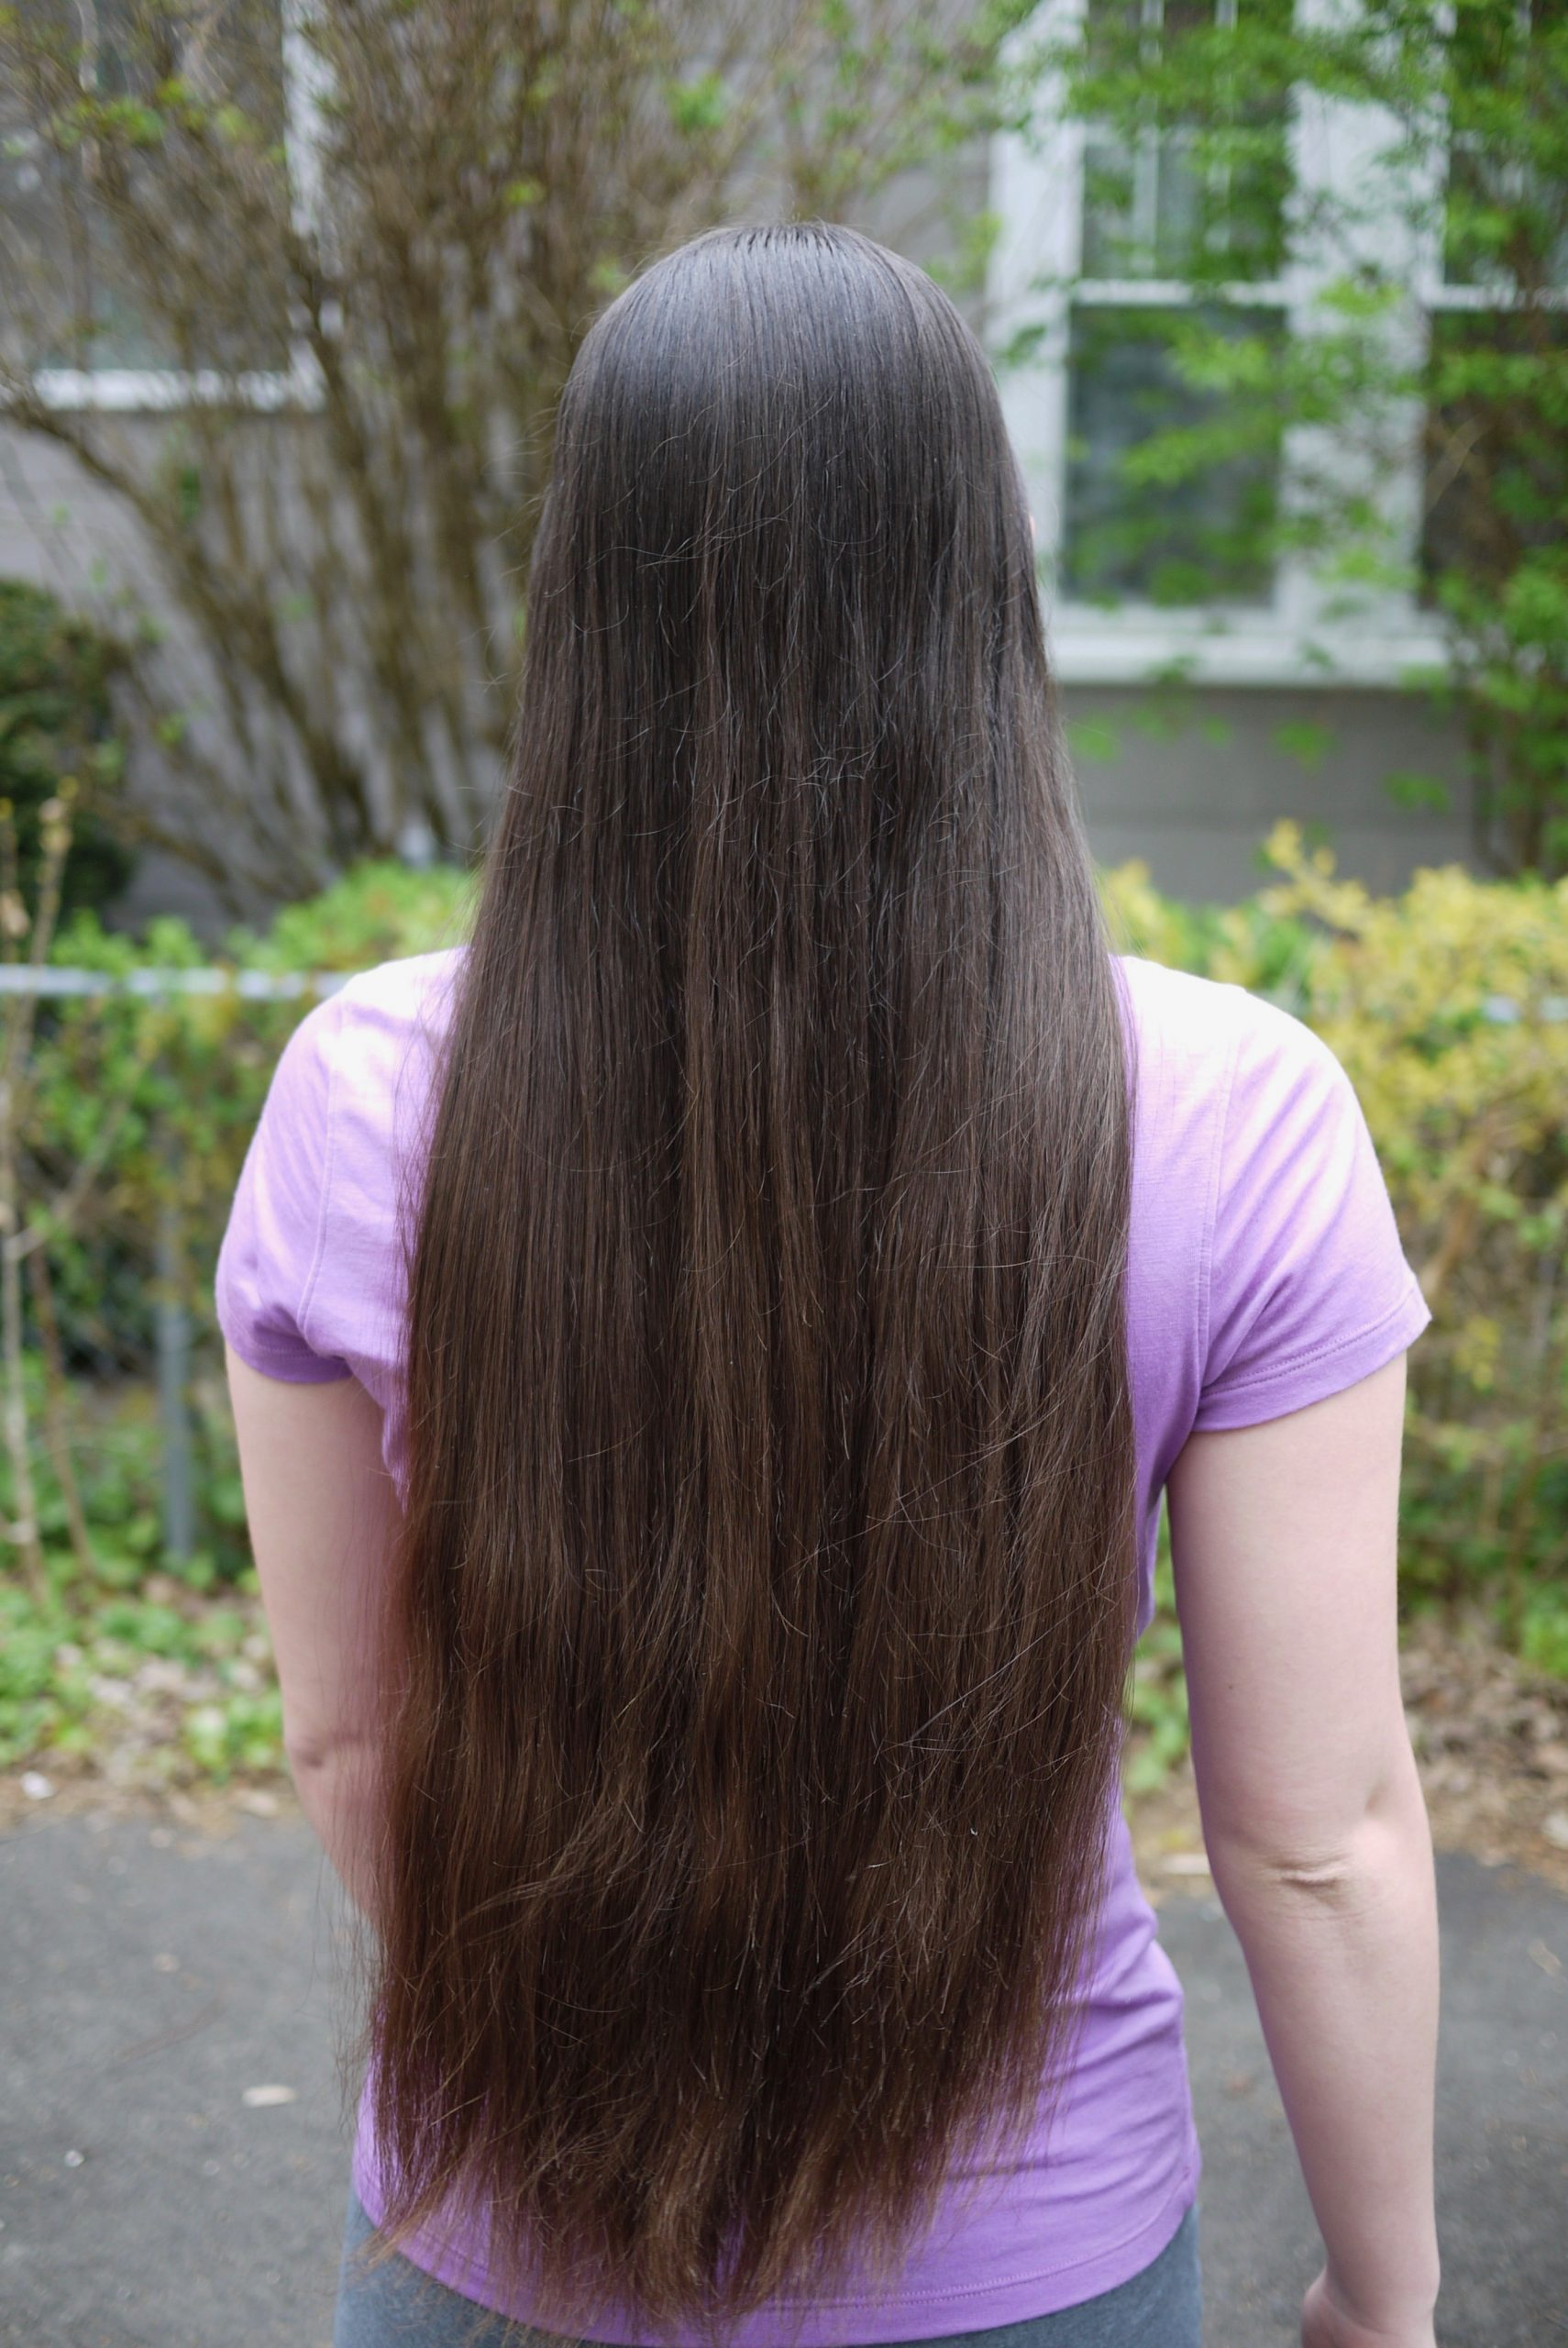 19 inches of Dark Brown Virgin Hair